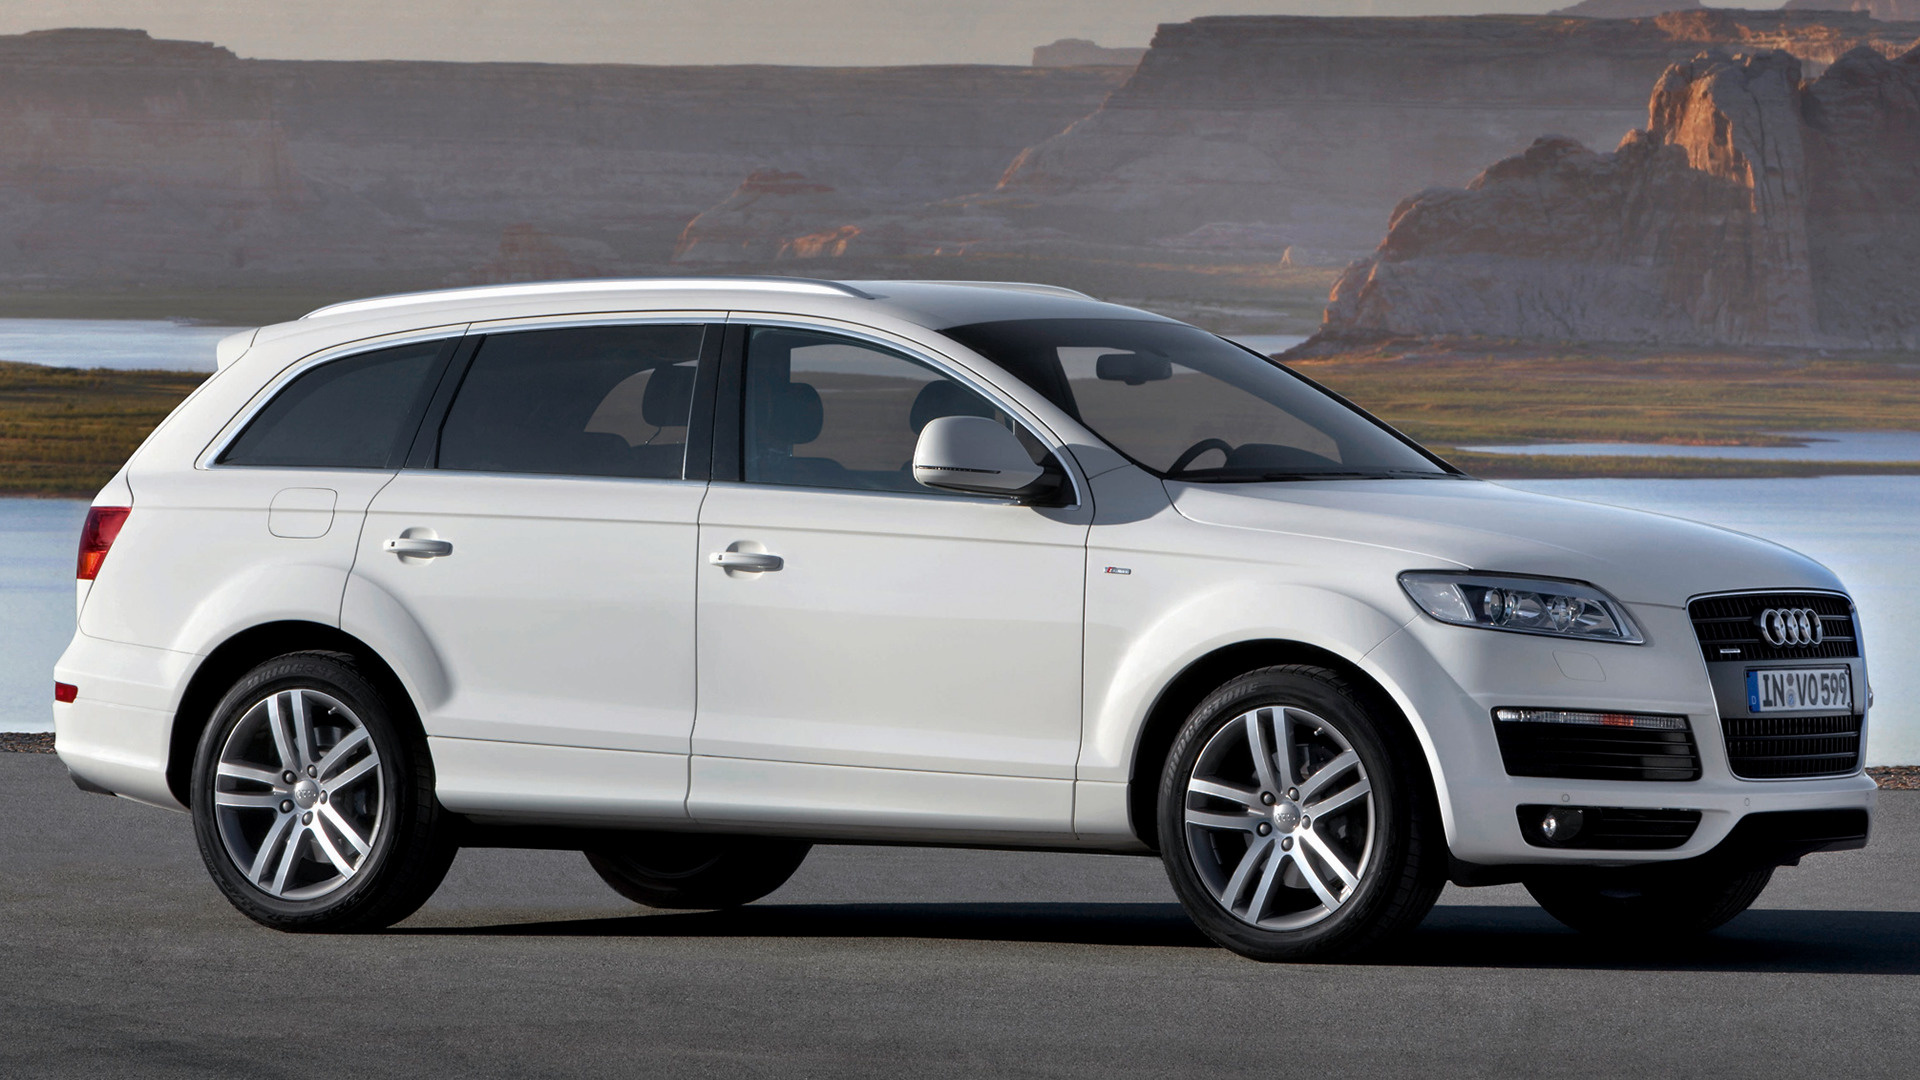 Audi Q7 S Line (2007) Wallpapers And HD Images